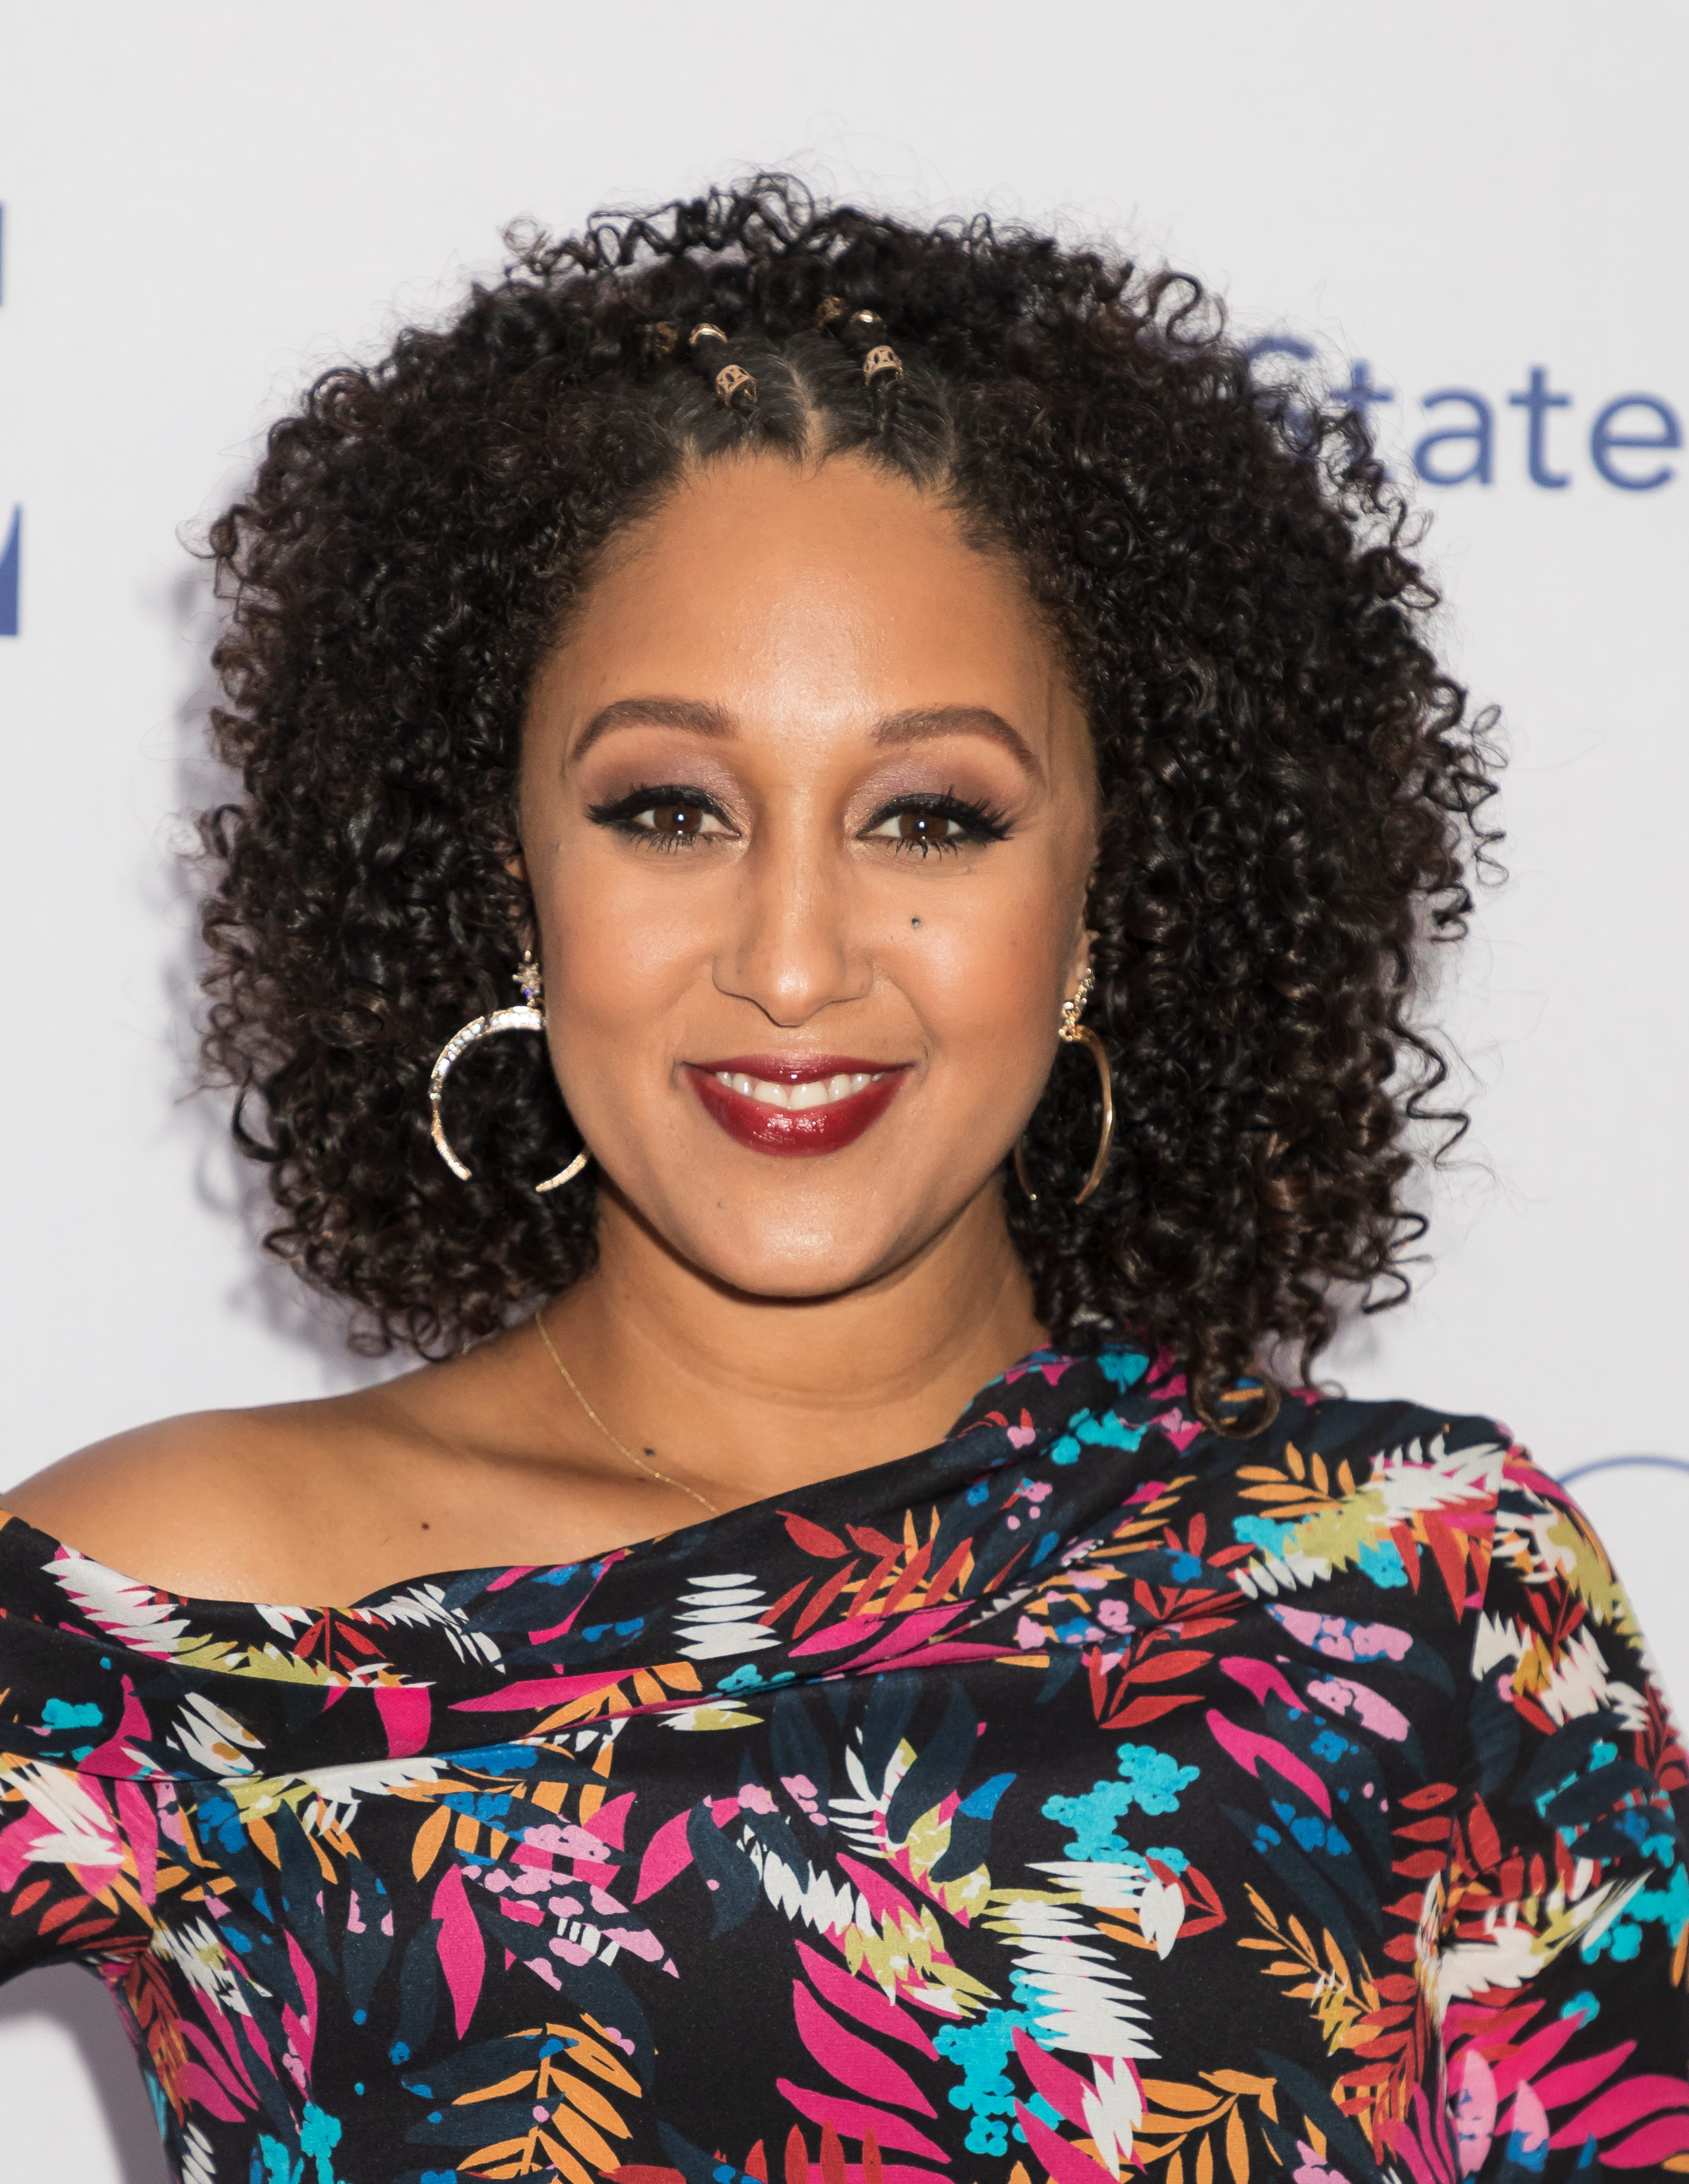 Tamera Mowry's Two Top Cornrows with Curls